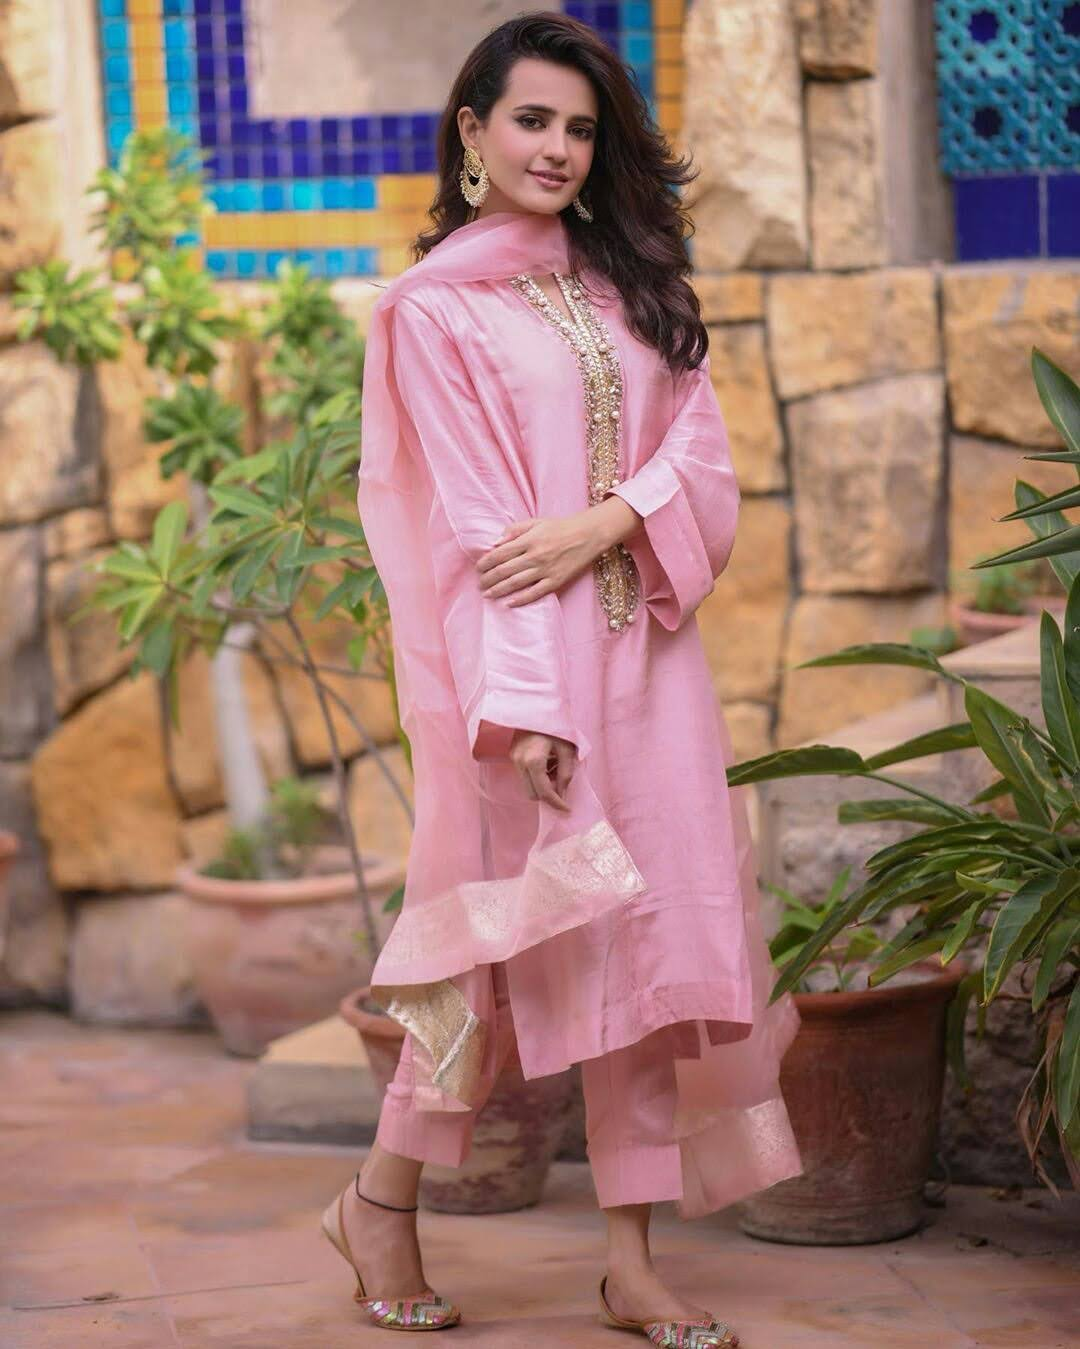 Sumble Iqbal Nice Pose in Pink Dress on Eid 2 Day